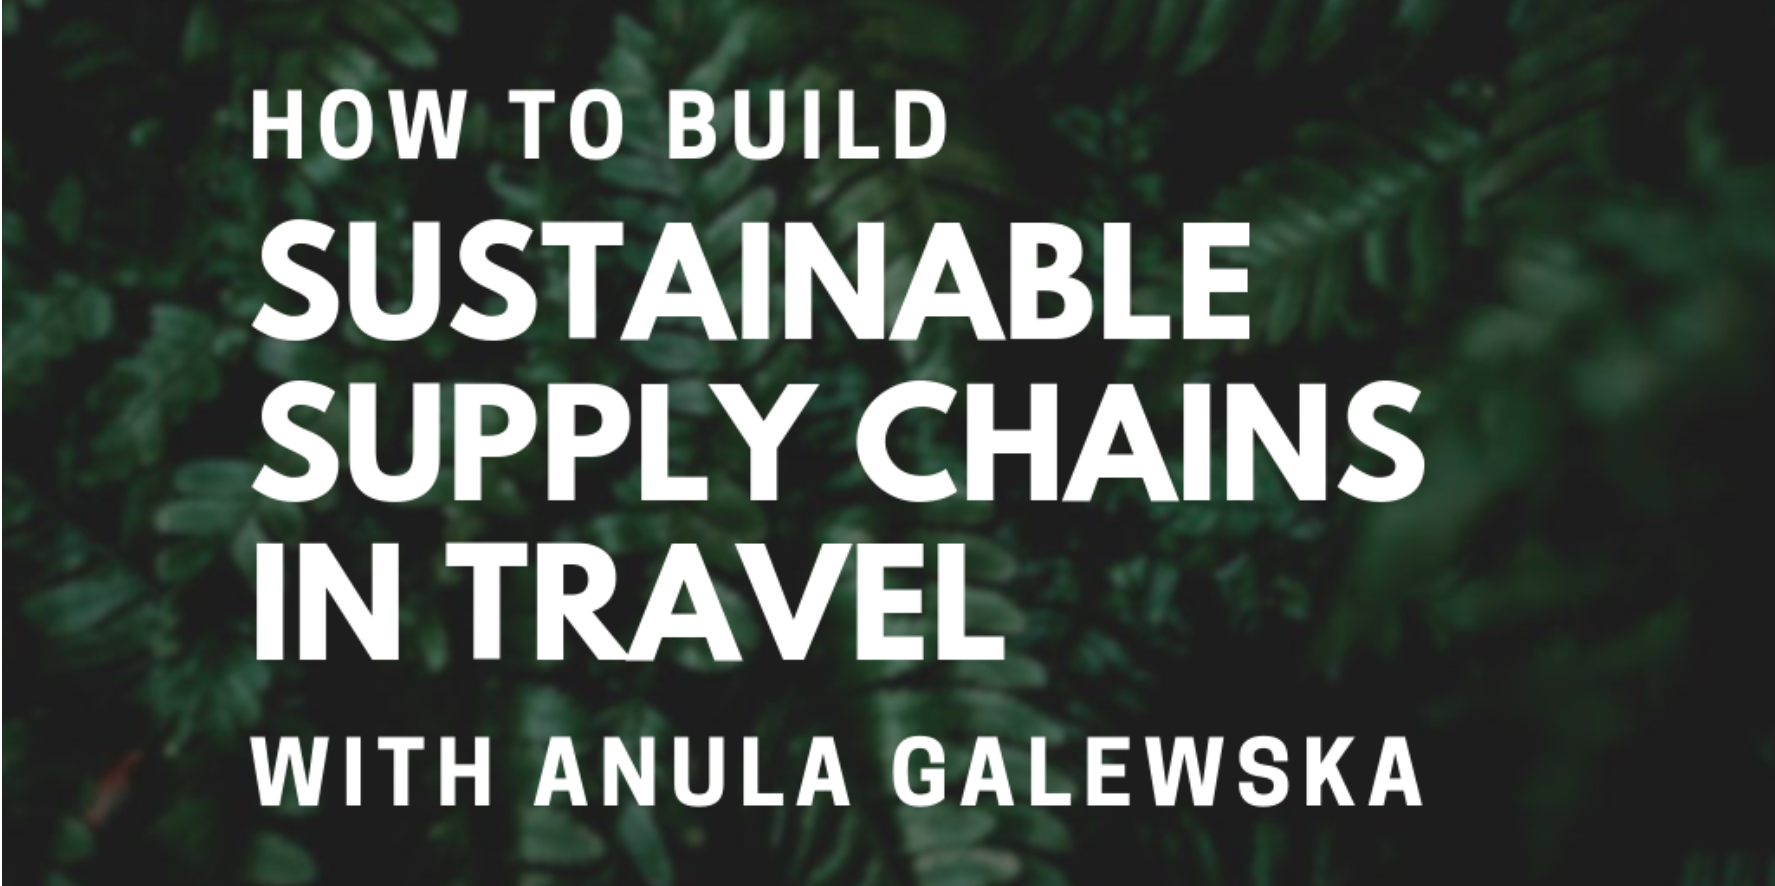 How to build sustainable supply chains in travel